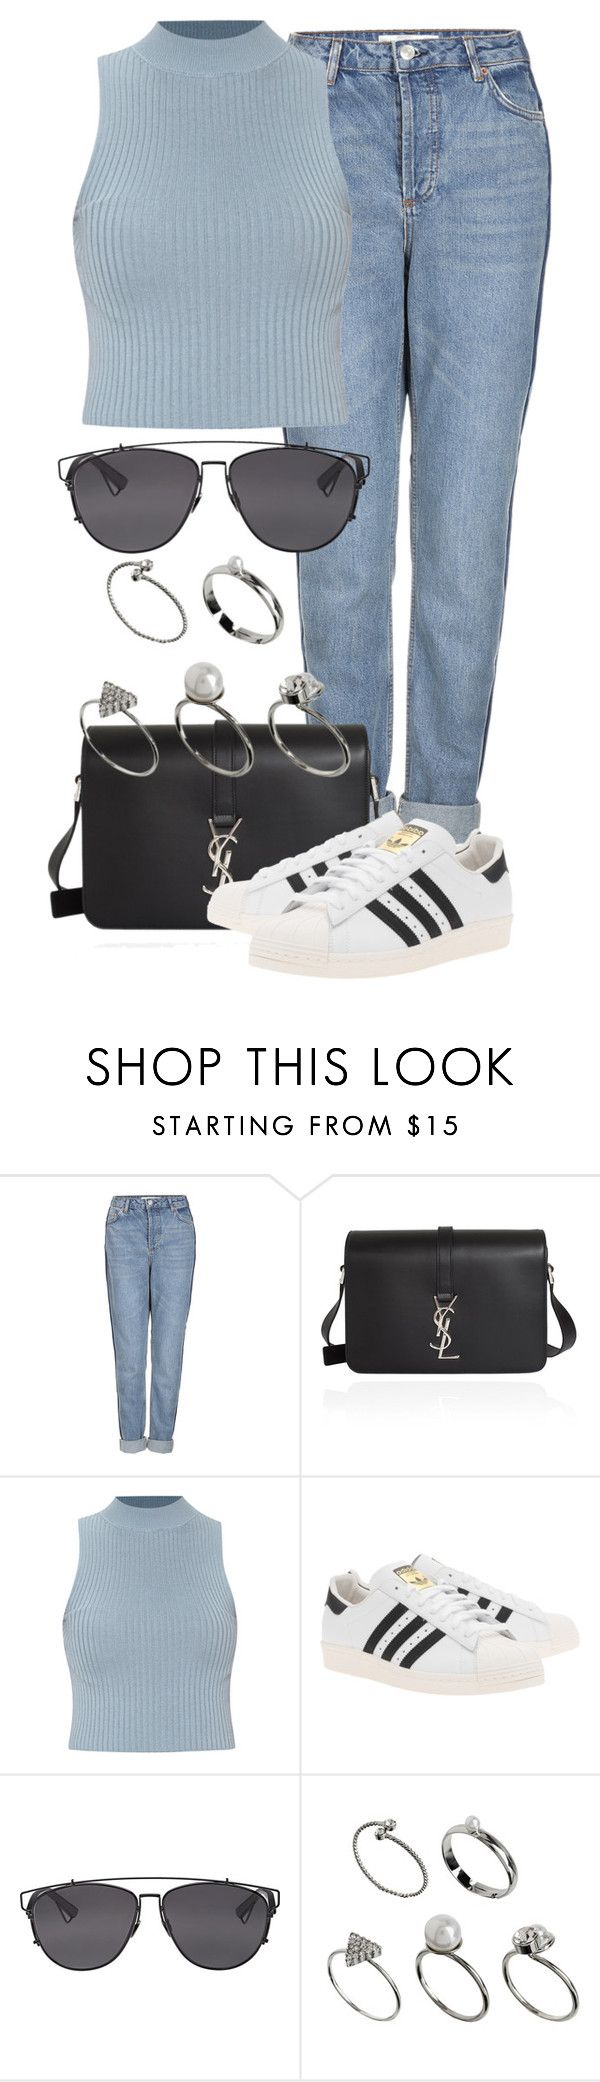 """""""Untitled #2130"""" by annielizjung ❤ liked on Polyvore featuring Topshop, Yves Saint Laurent, adidas Originals, Christian Dior and ASOS"""